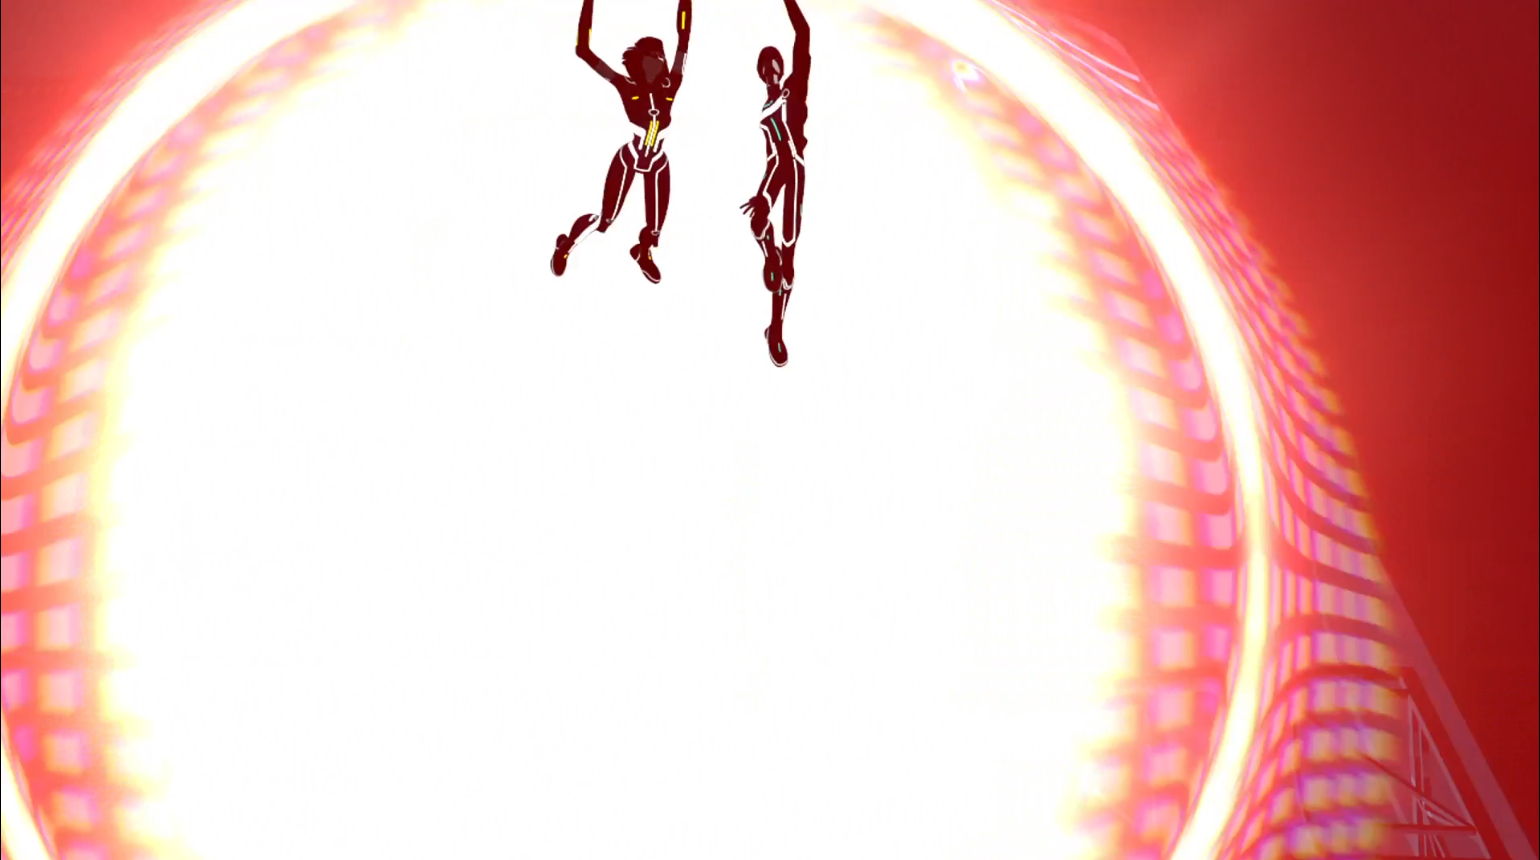 Tron Uprising - Mara and Zed manage to escape the explosion